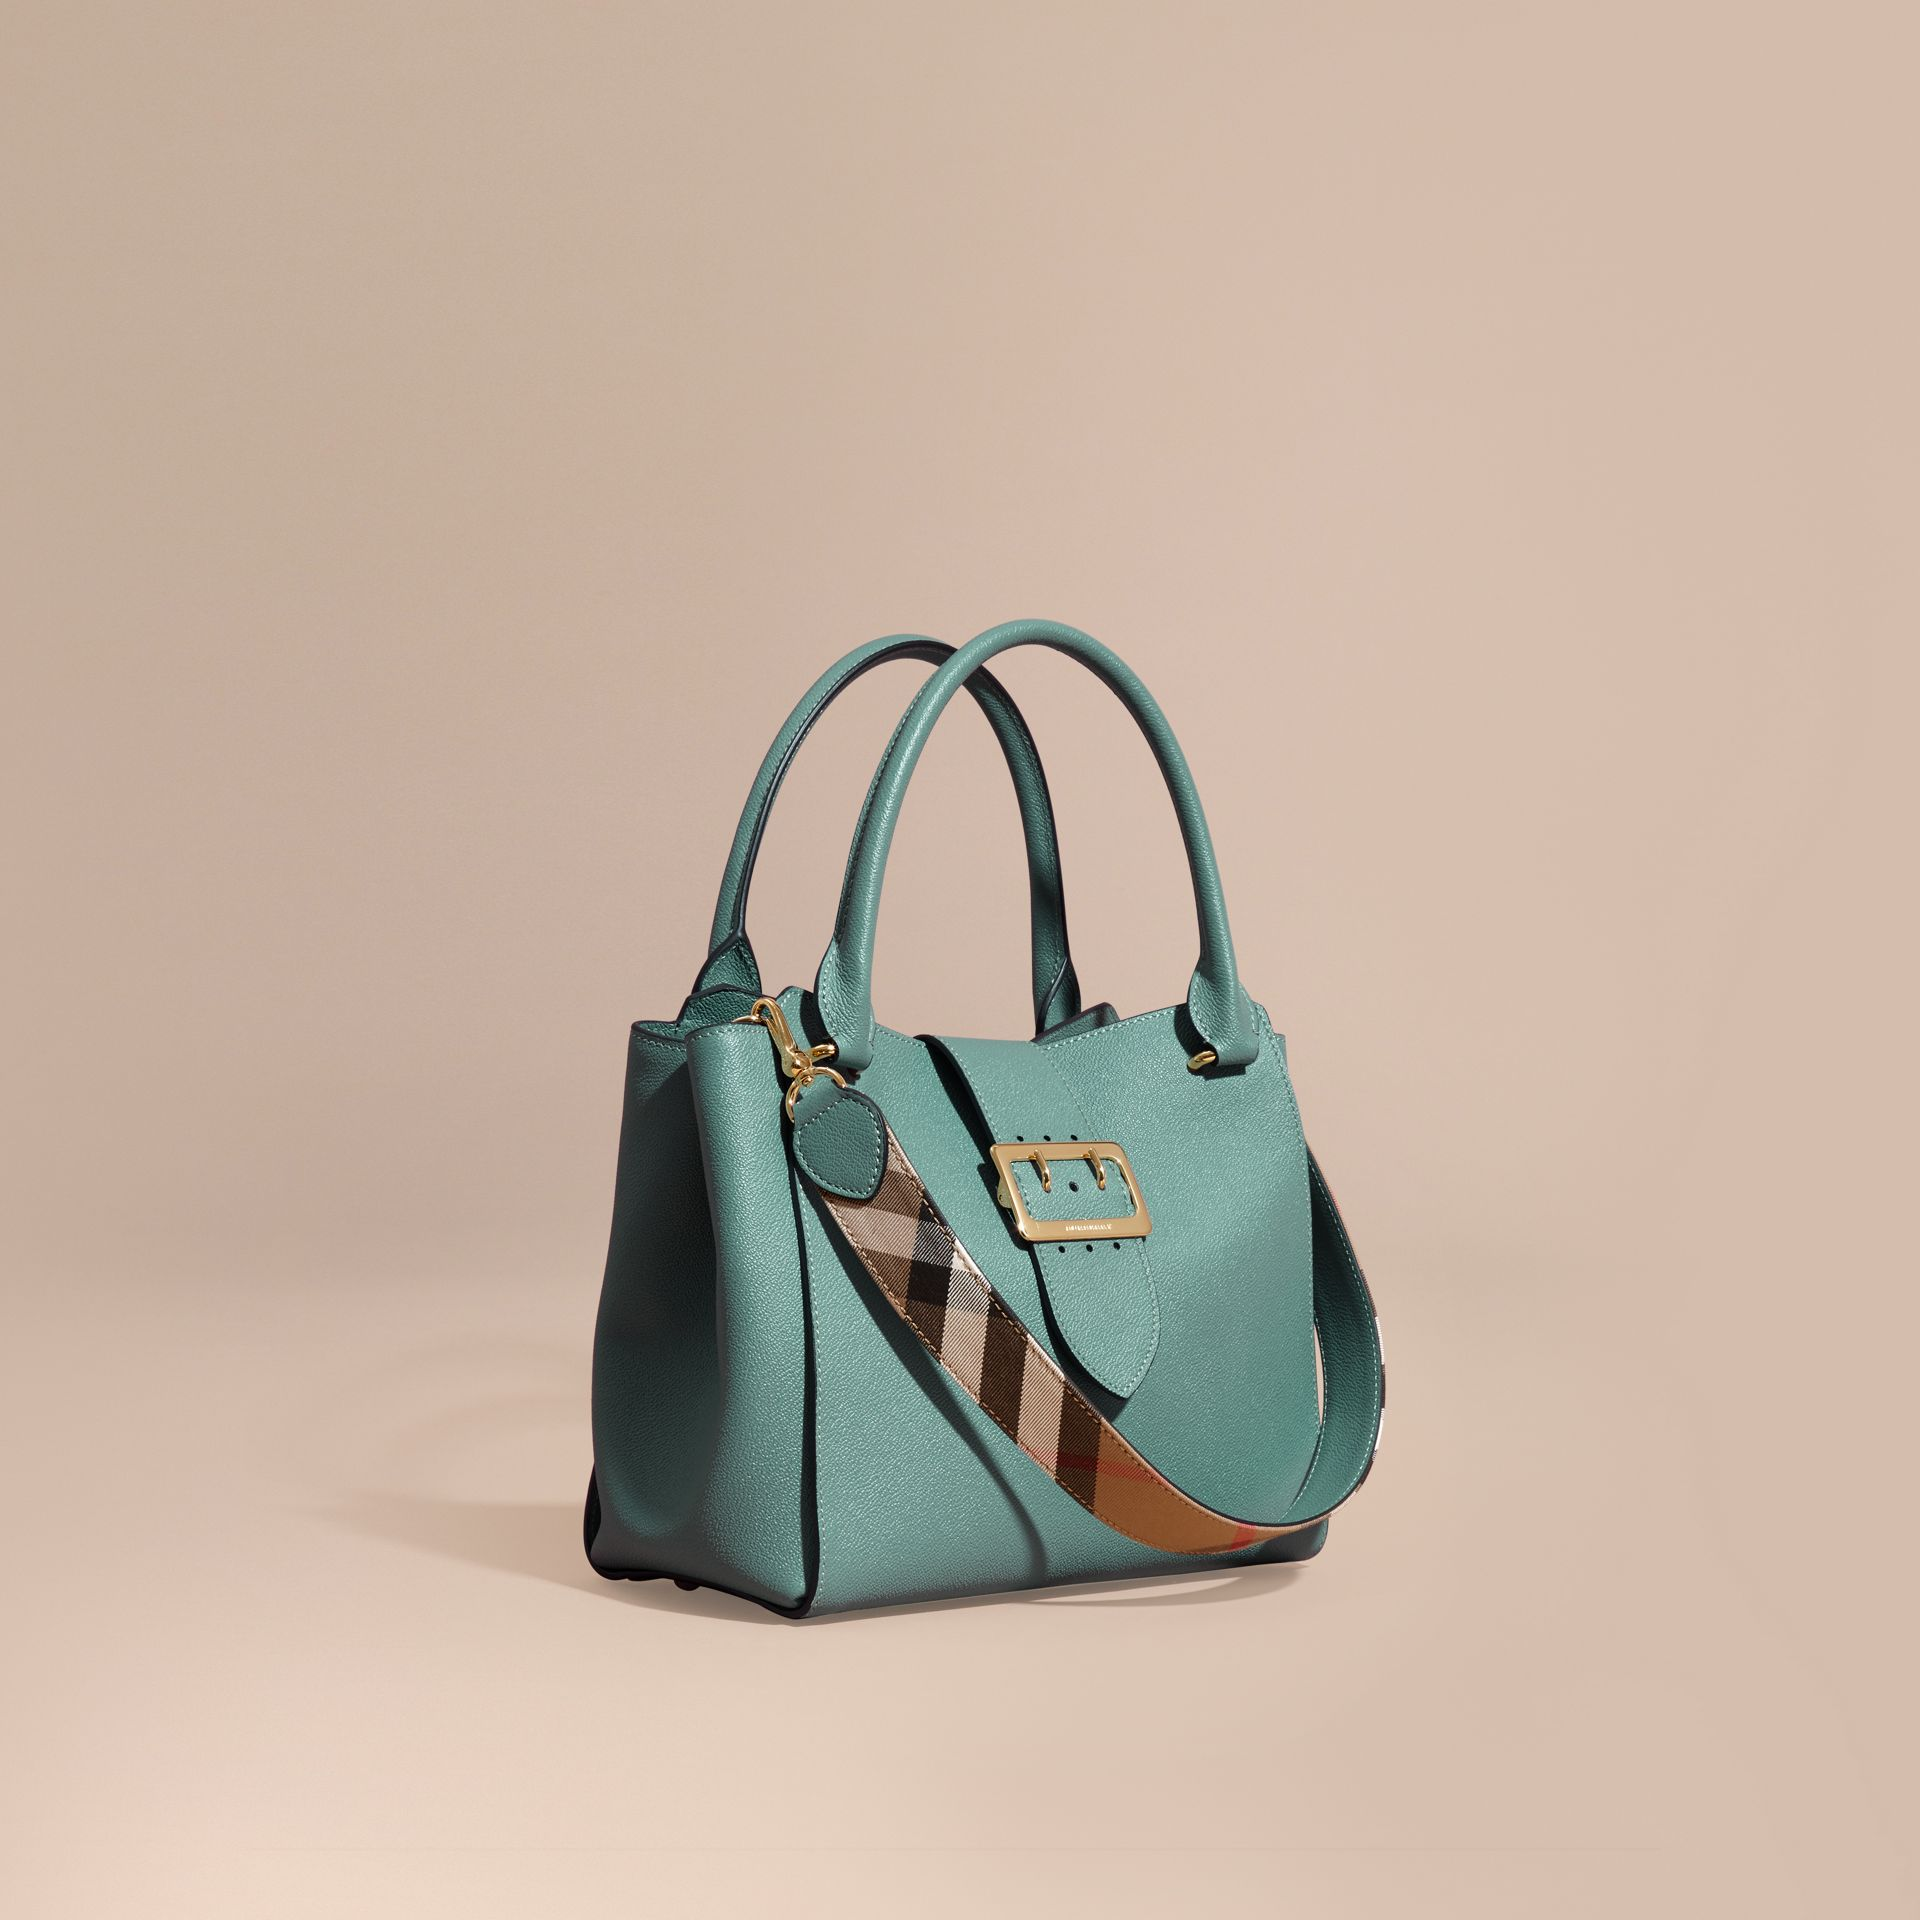 The Medium Buckle Tote in Grainy Leather in Eucalyptus Green - gallery image 1